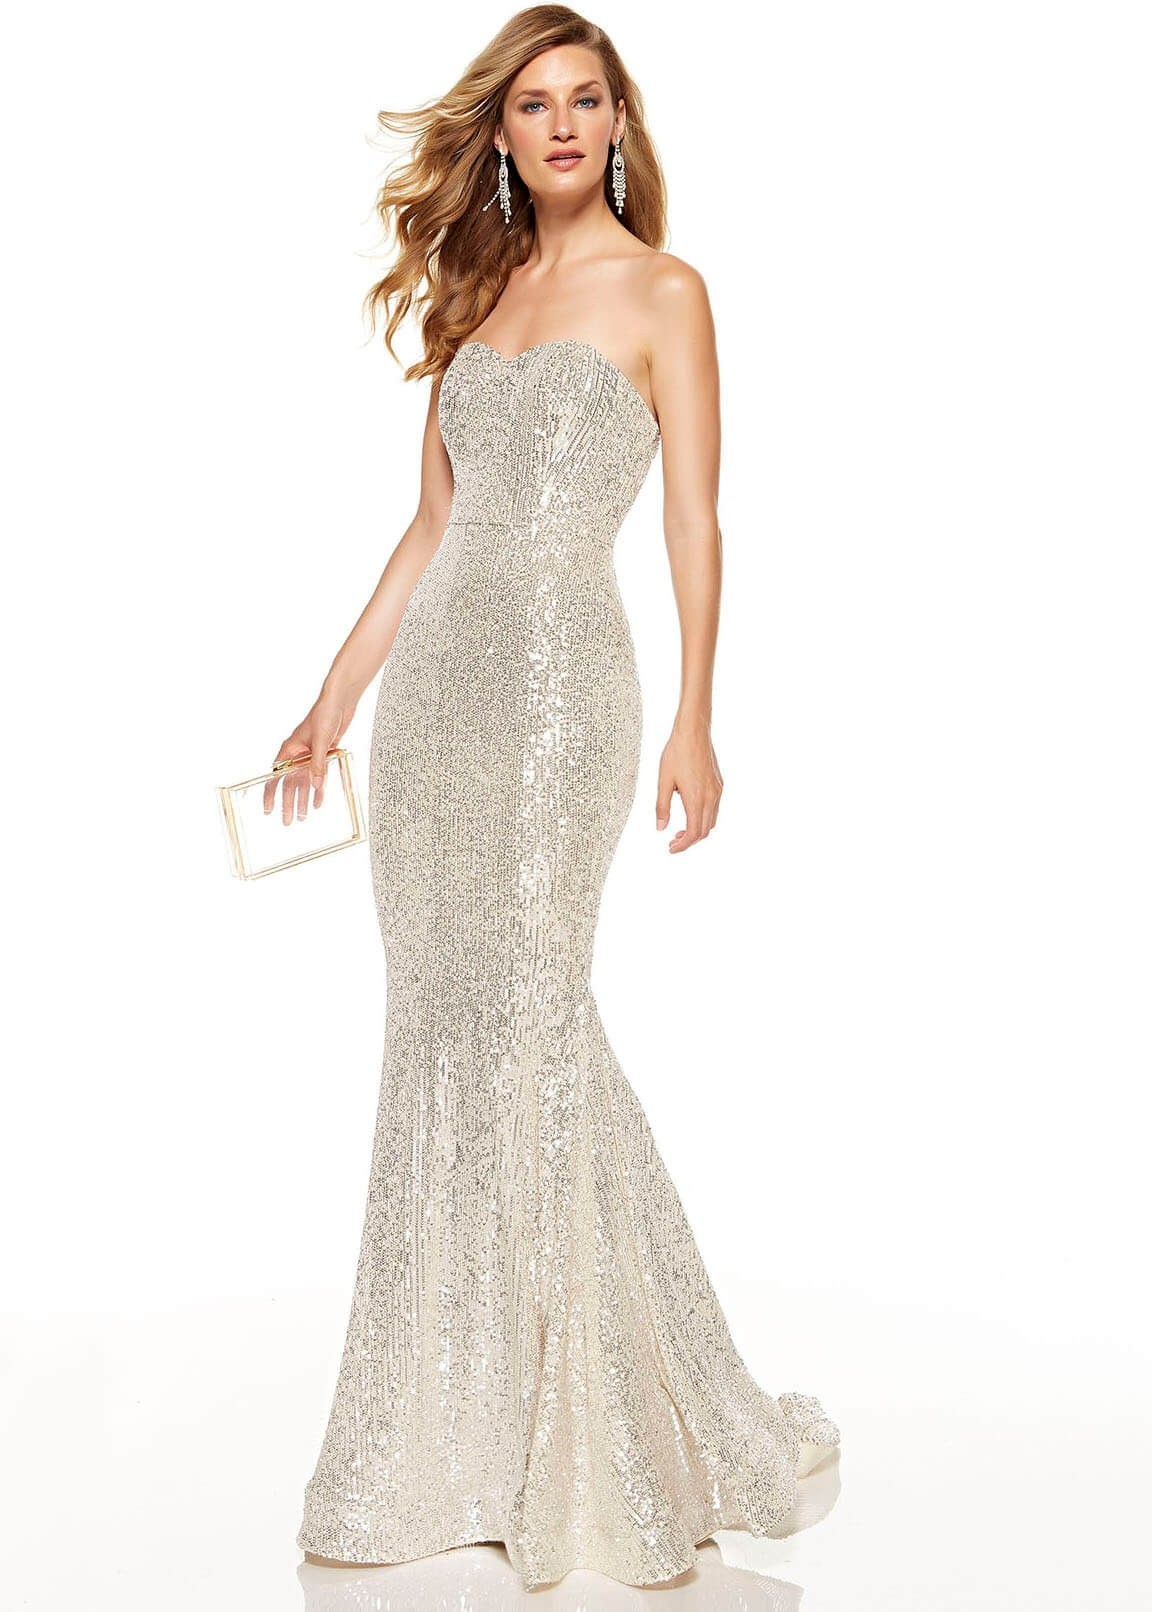 Alyce 60809 Strapless Sequin Mermaid Gown